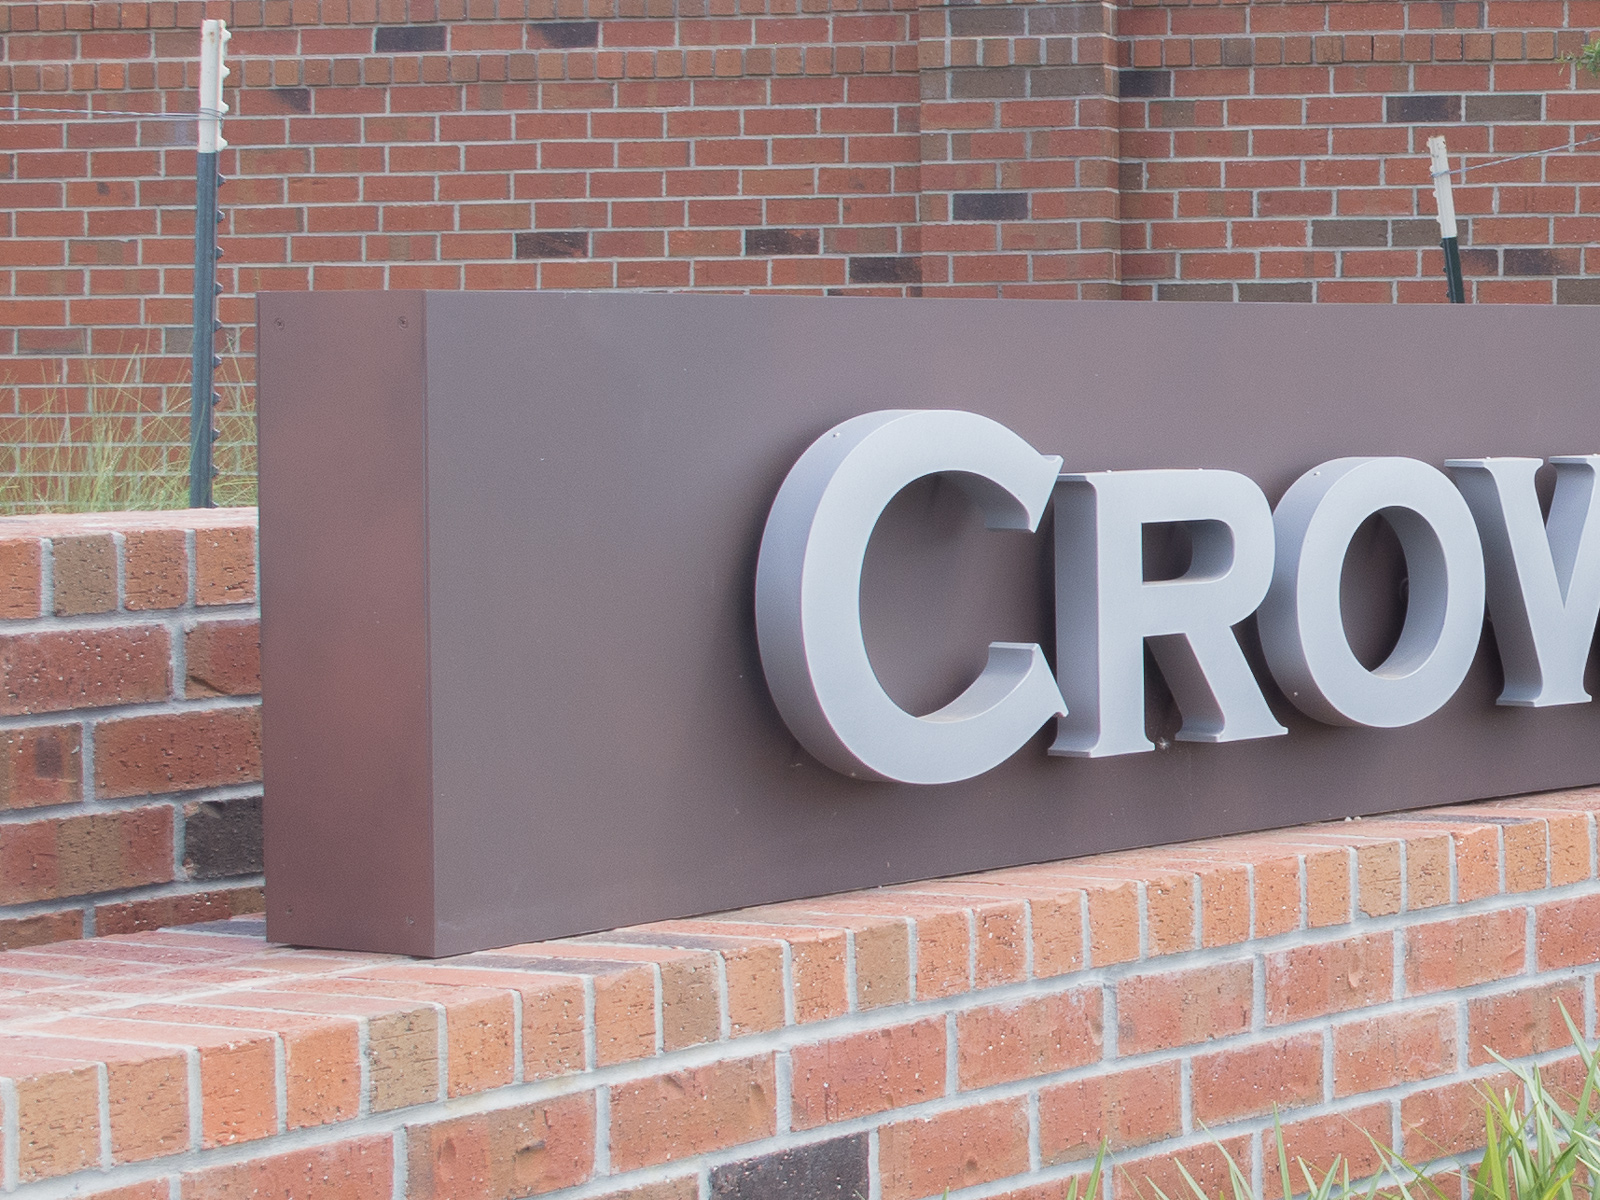 Close up view of custom fabricated, curved aluminum faux-corten sign cabinet with halo-illuminated channel letters.